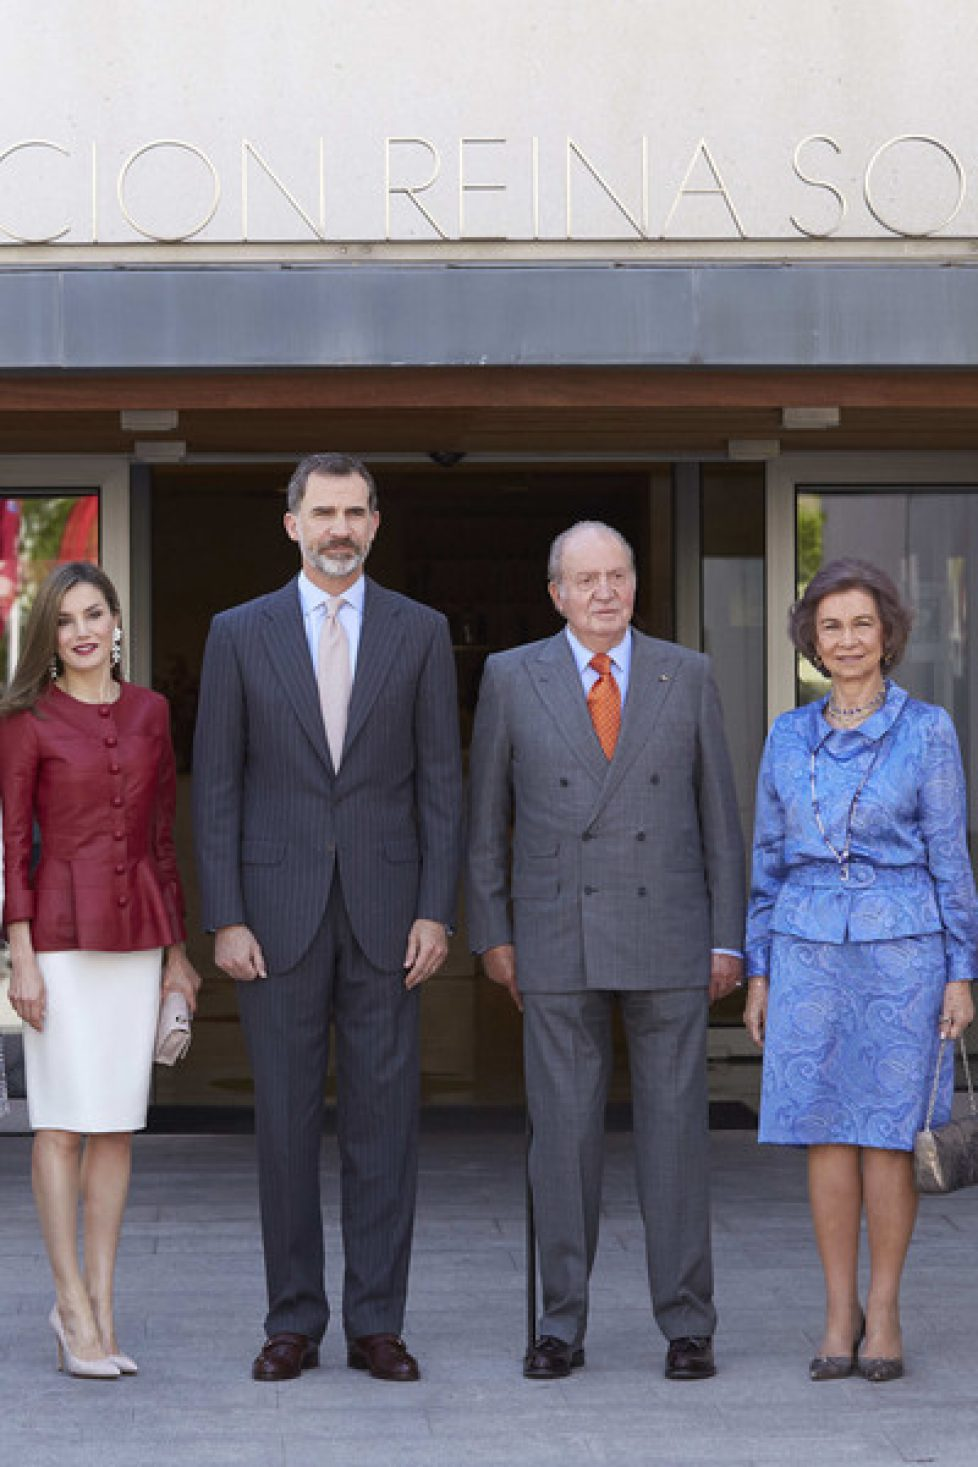 Spanish+Royals+Attend+40th+Anniversary+Reina+qk2QdPU1P68l